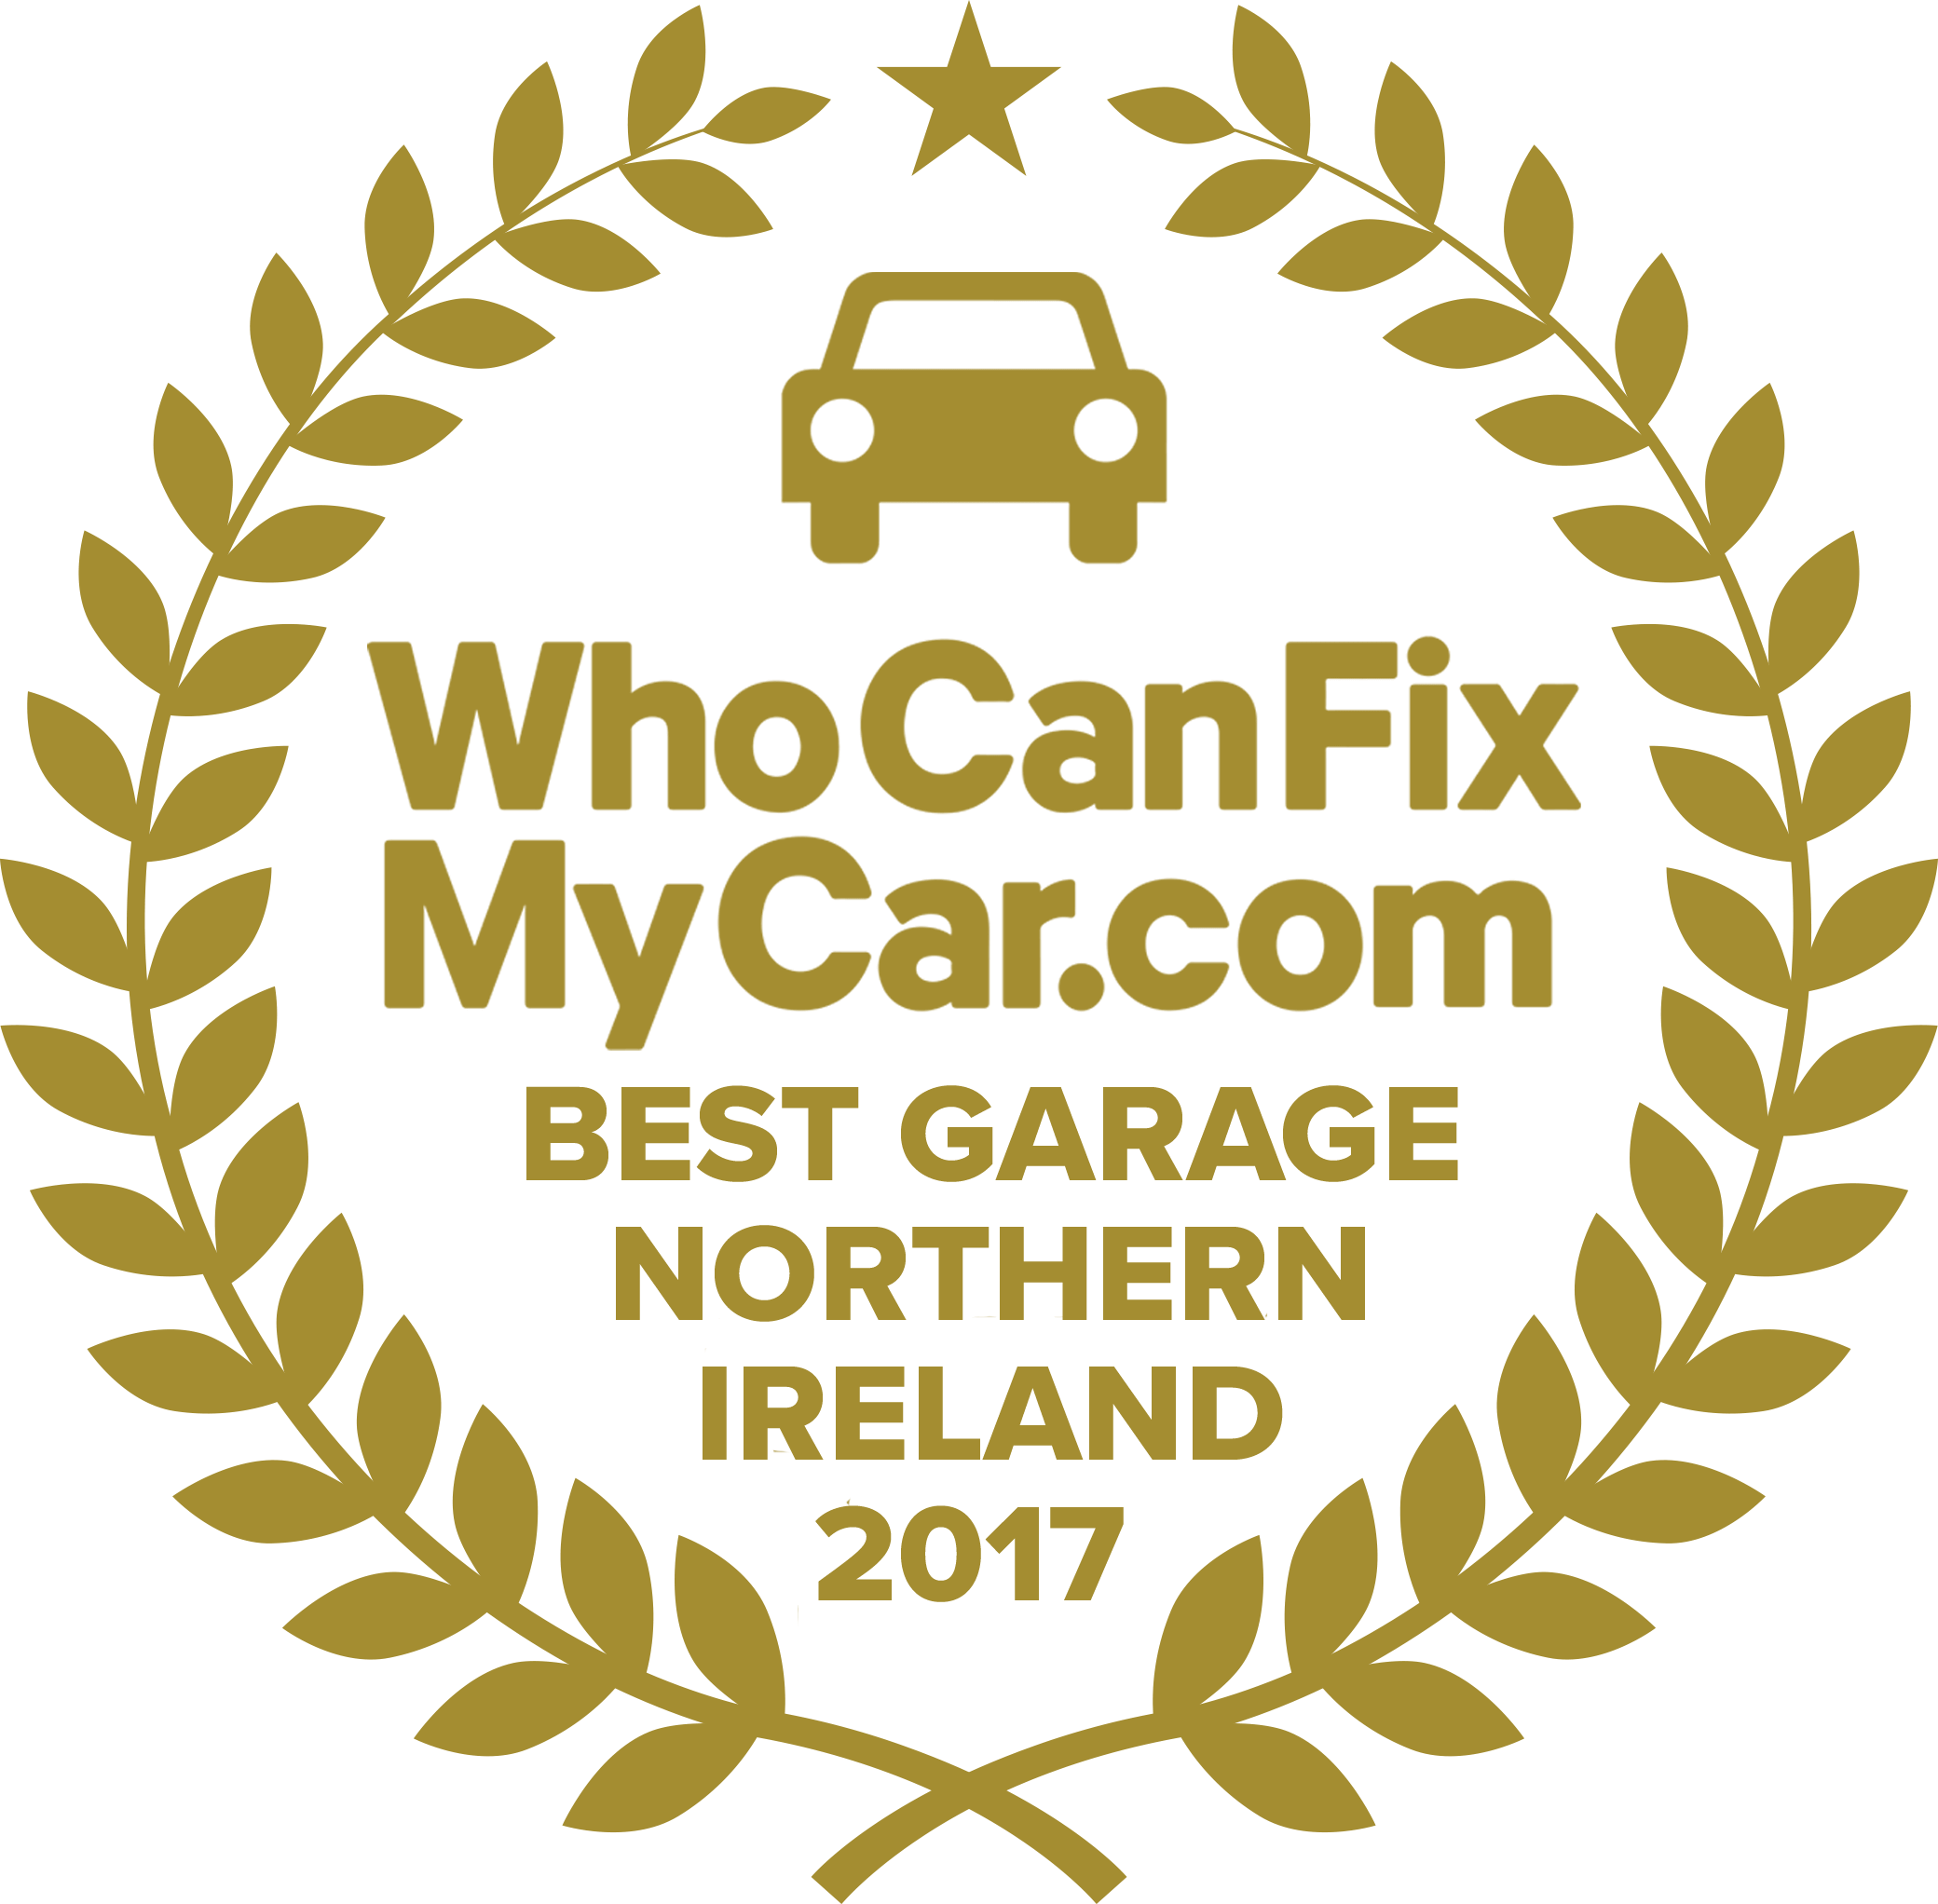 Best Garage 2017 - Northern Ireland